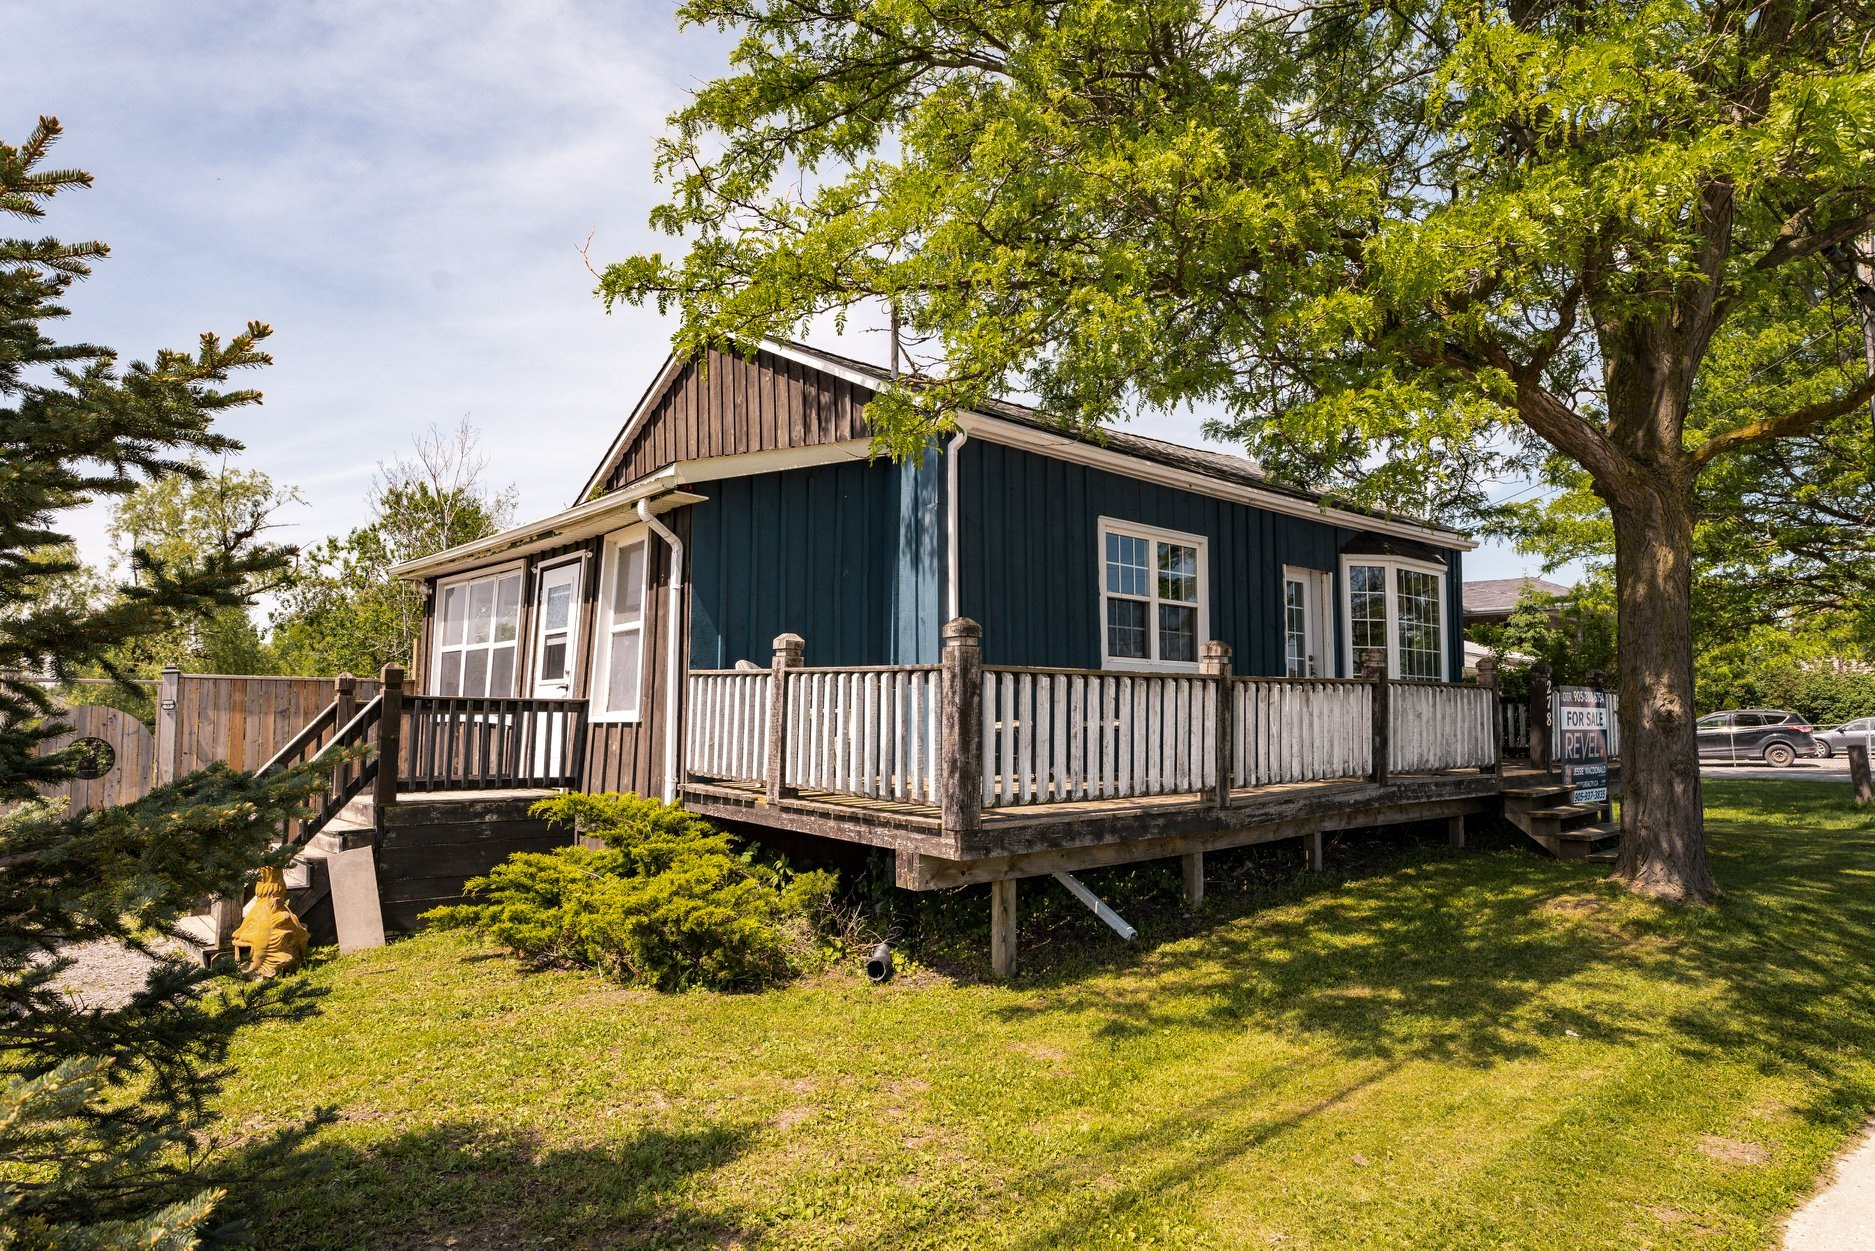 278 St. Catharines St, Smithville, Ontario  l0R 2A0 - Photo 1 - RP5119031360